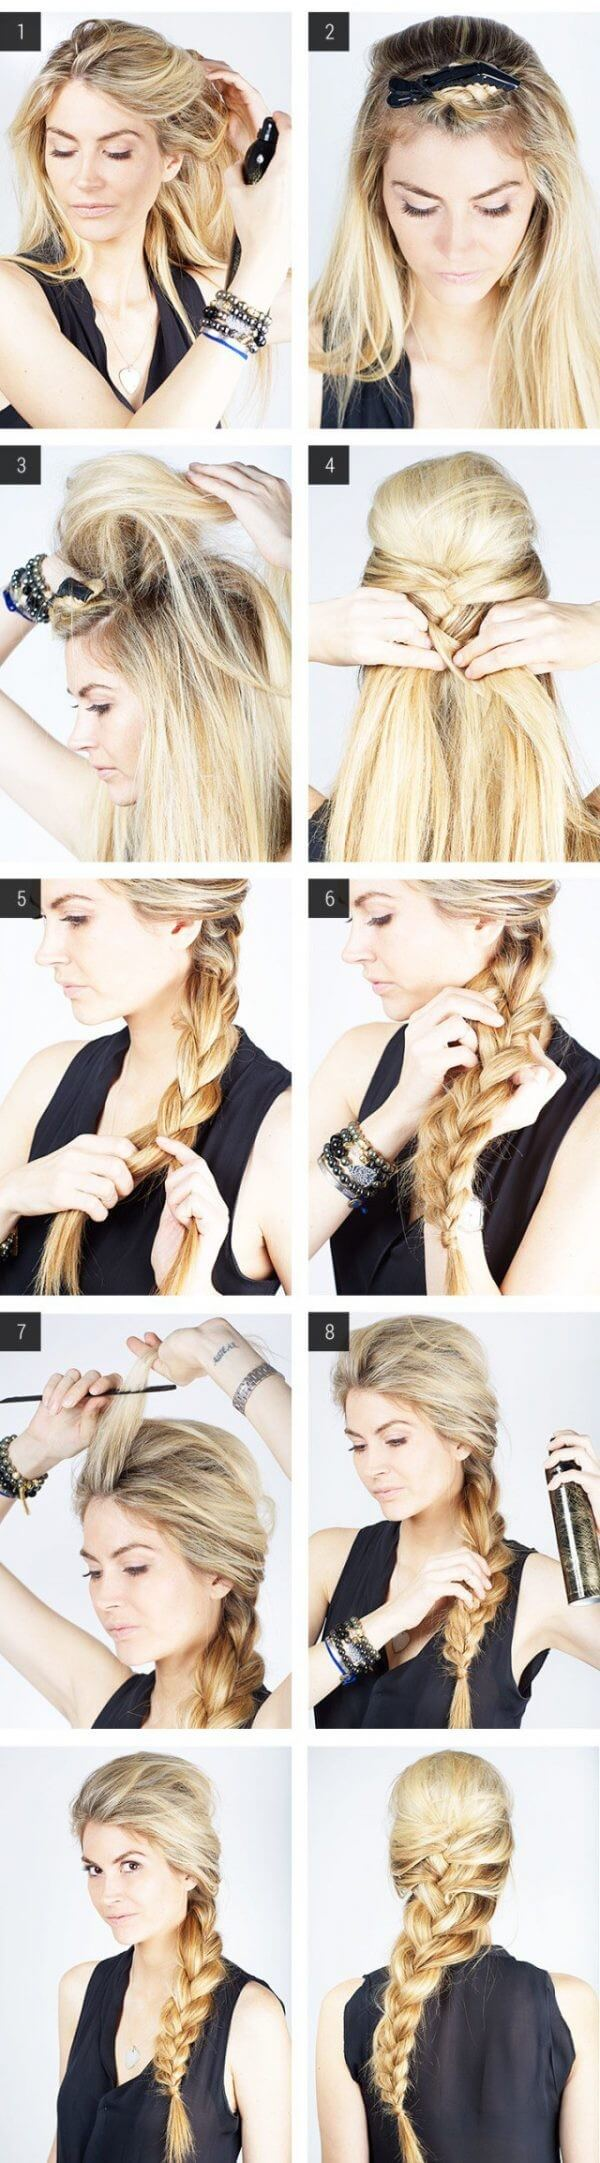 Weave The Braids Step by Step Tutorial Easy Hairstyles for Fine Hairs to Make them Look Thicker